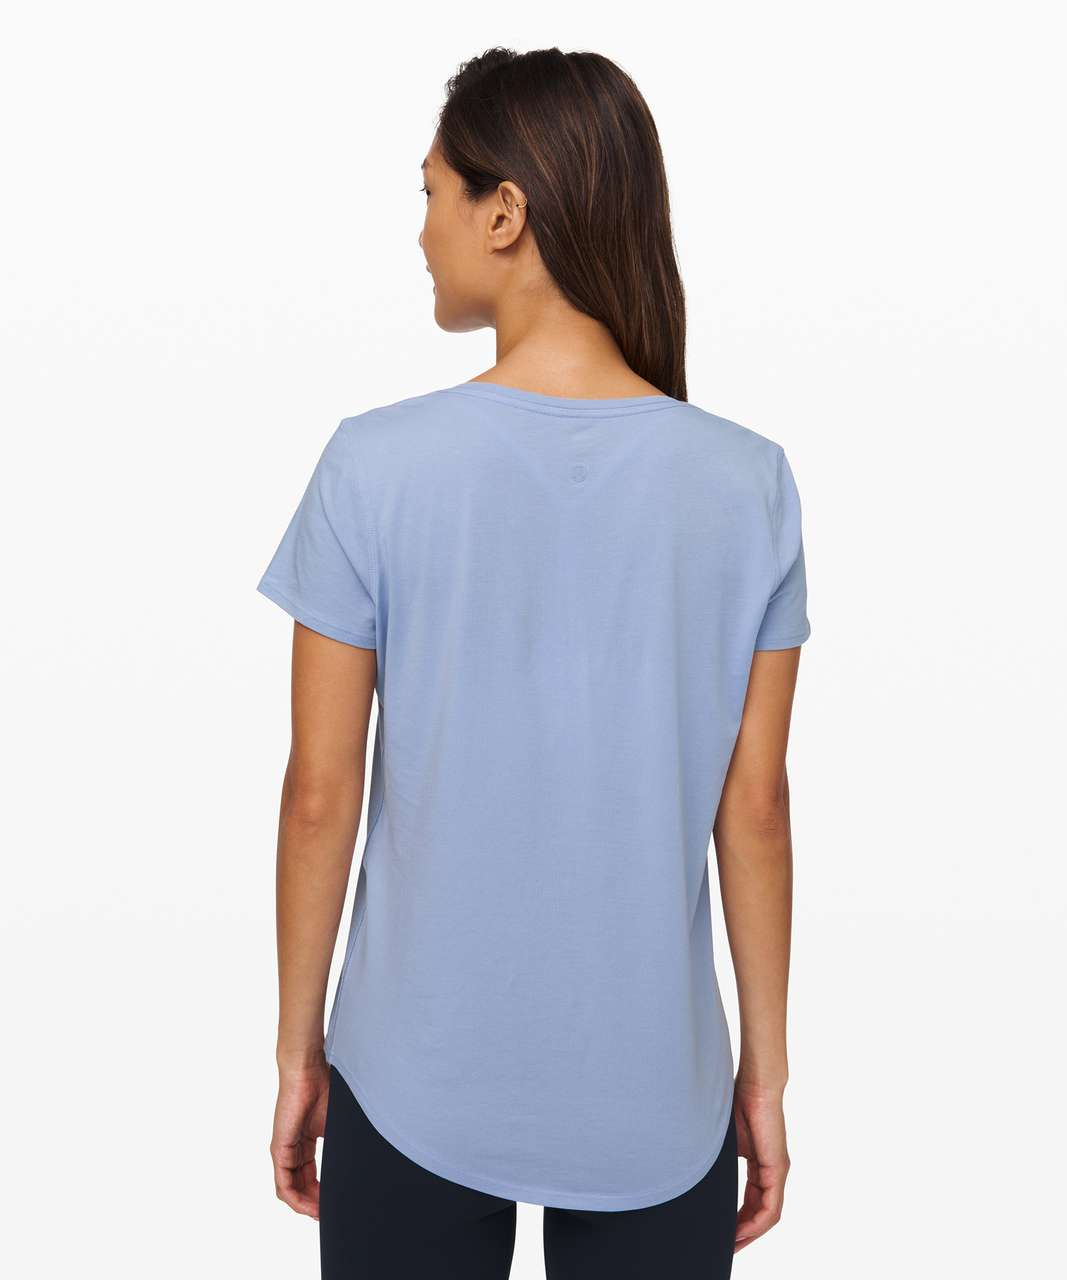 Lululemon Love Tee V - Ice Cap